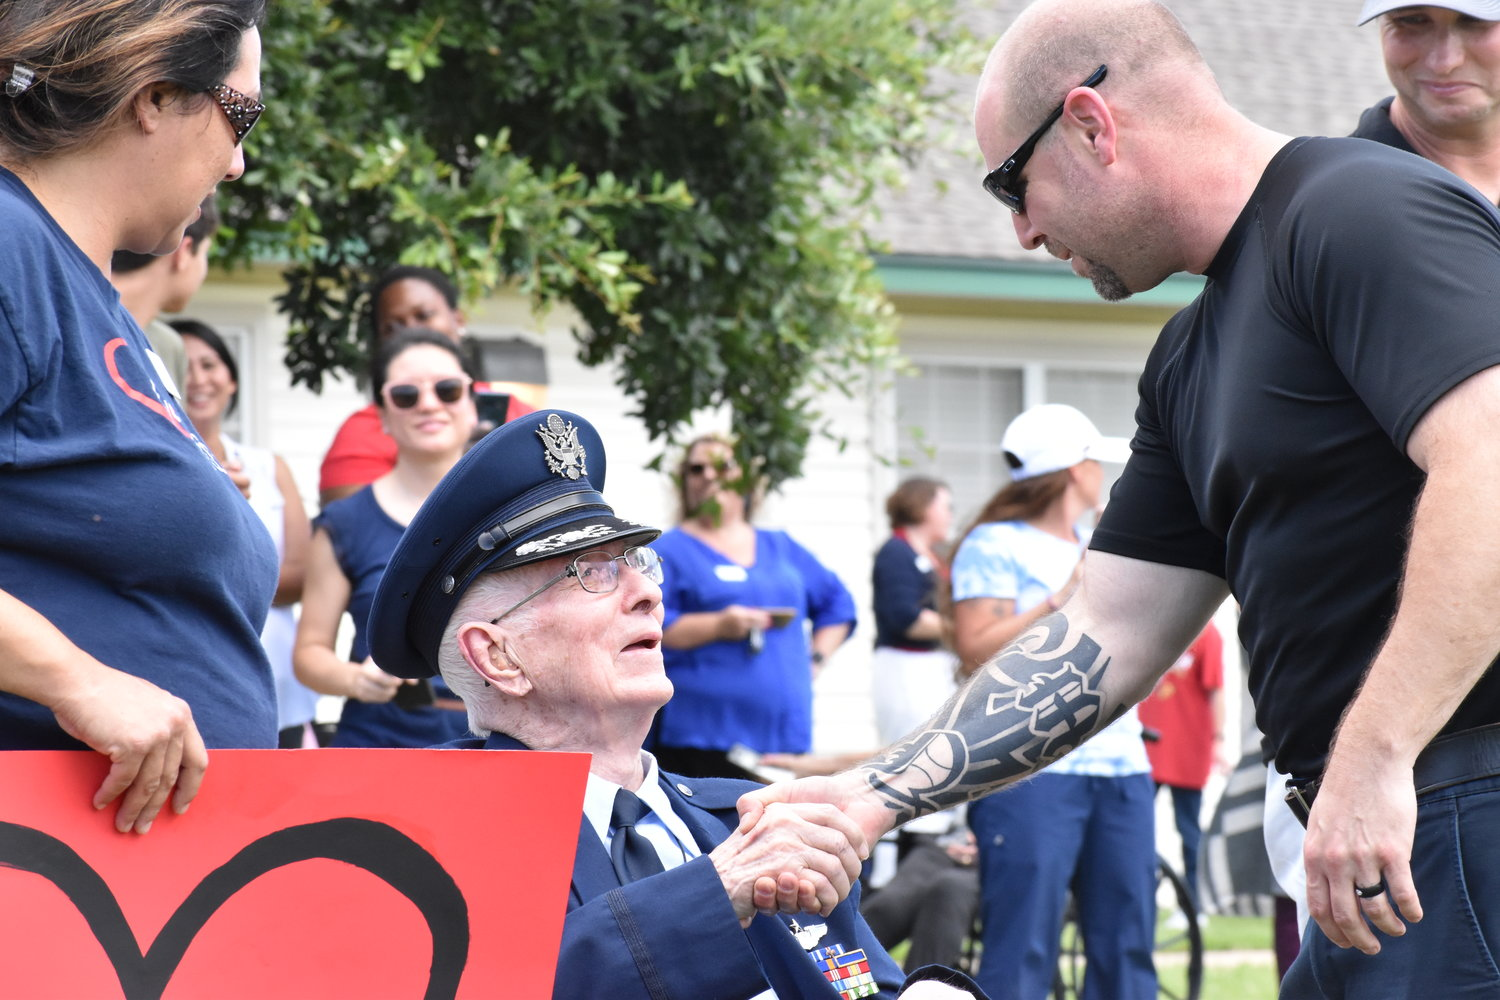 Lt. Col. Jerry Jennings shakes the hand of Nick Baker, a medic who works for Honor Flight Austin, a non-profit that aims to transport veterans to Washington D.C. to allow them to visit memorials created to honor their service.